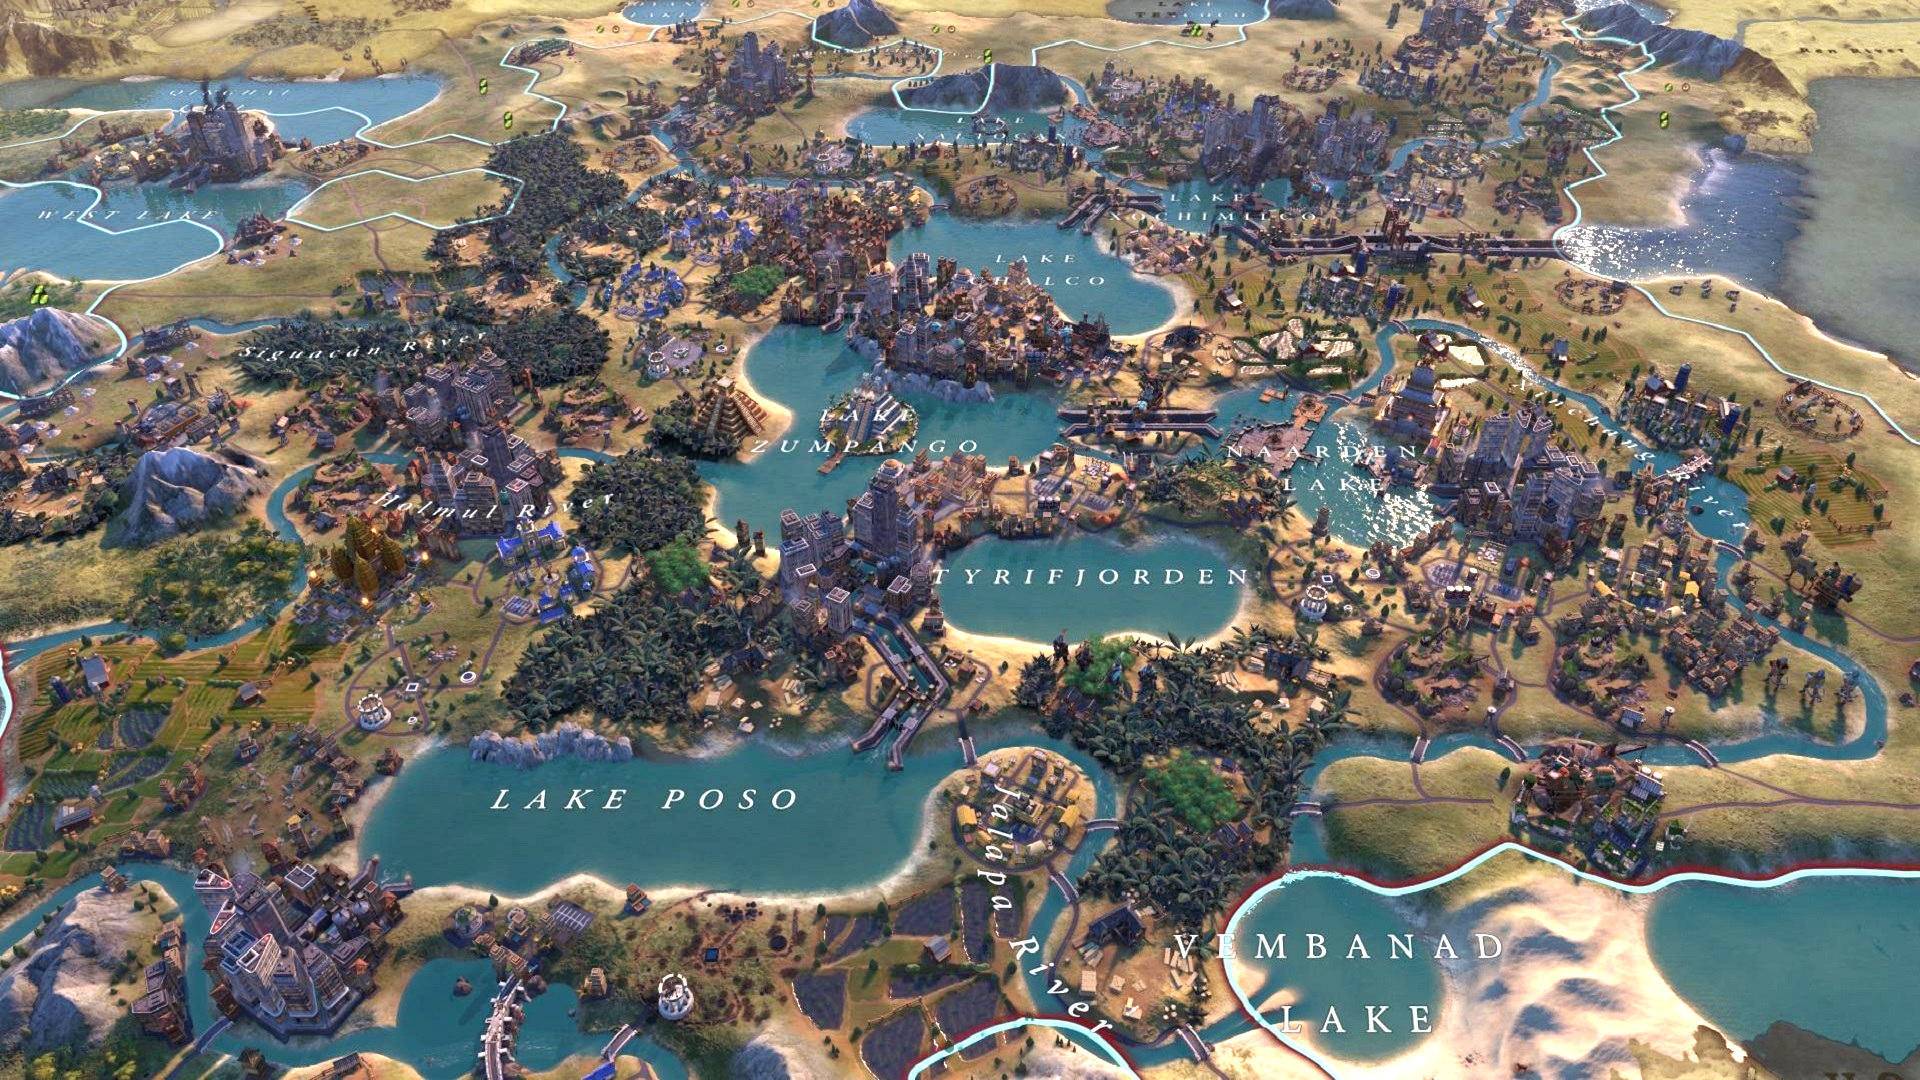 This Civ 6 screenshot reminds us how good Civ 5's art style was